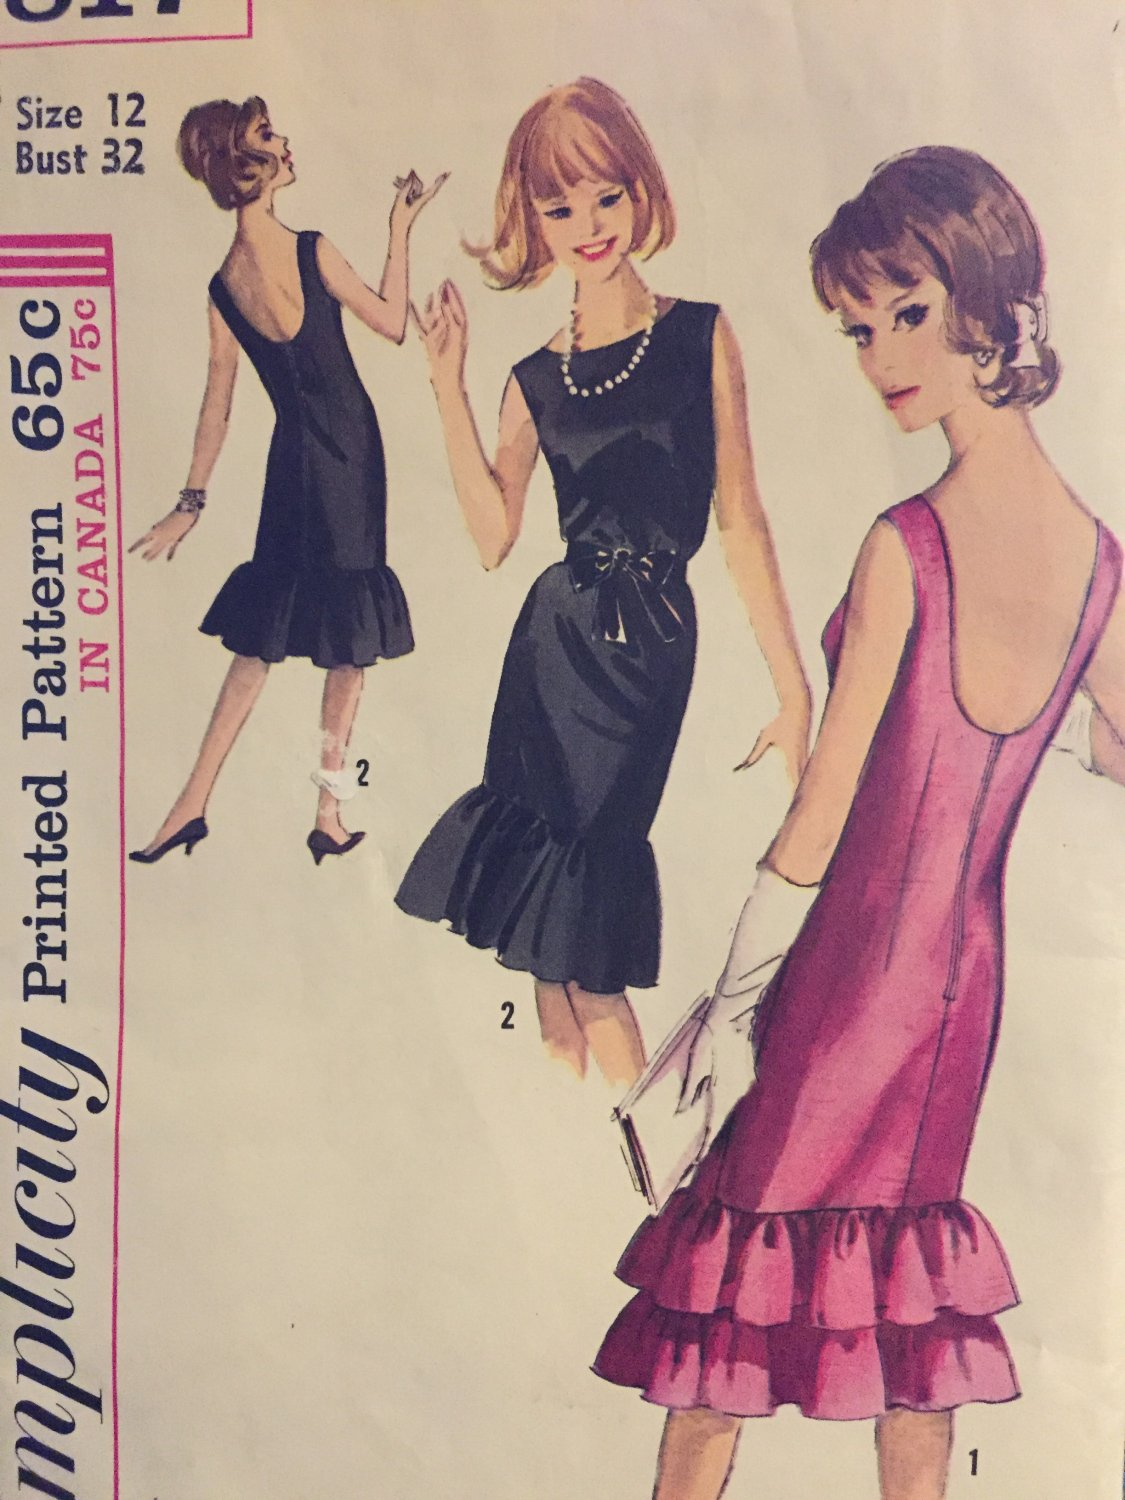 1960s Sleeveless Cocktail Dress Sewing Pattern Simplicity 5817 Bust 32